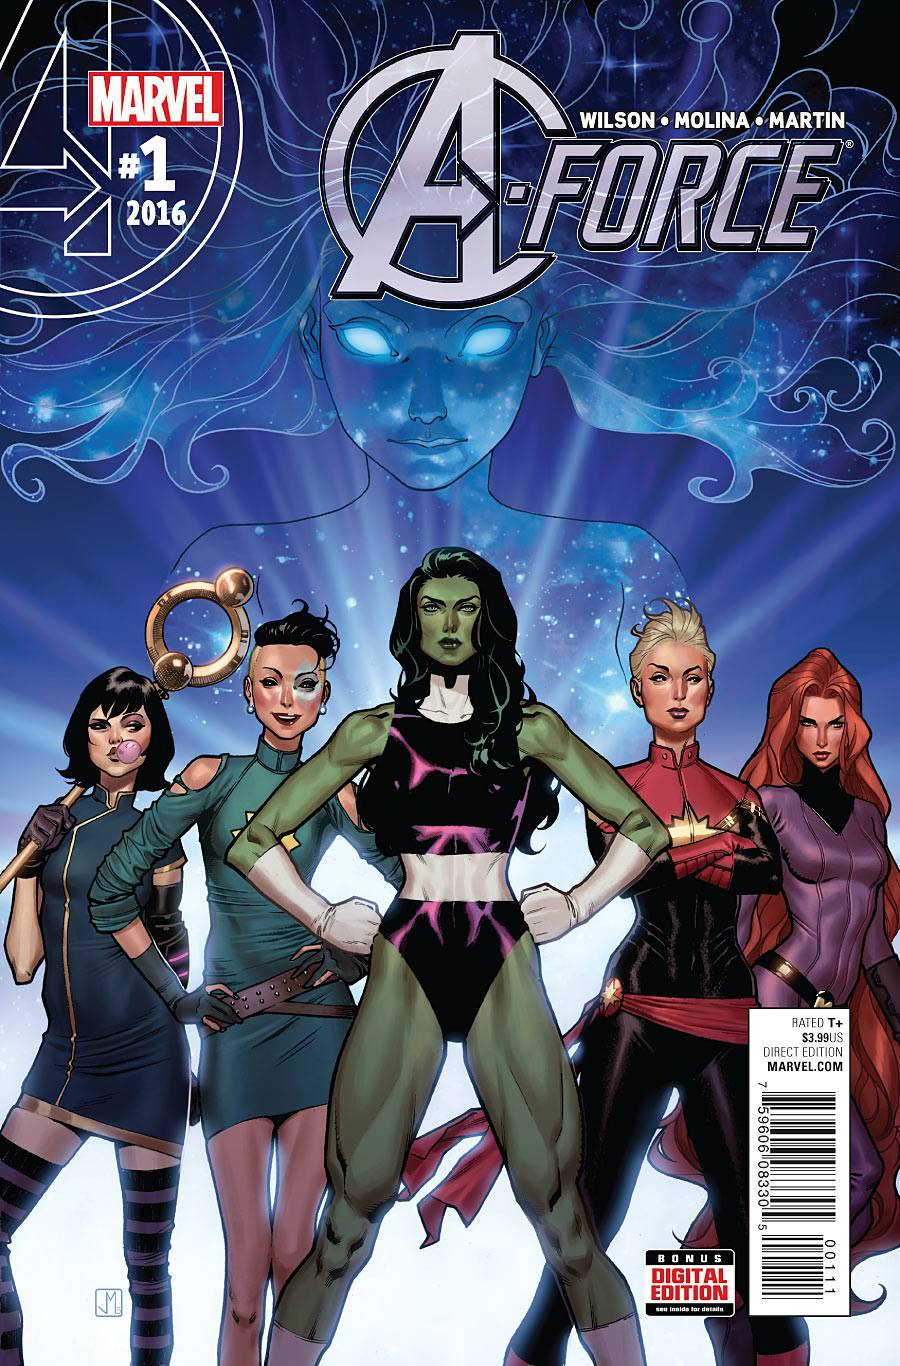 01/06/2016 A-FORCE #1